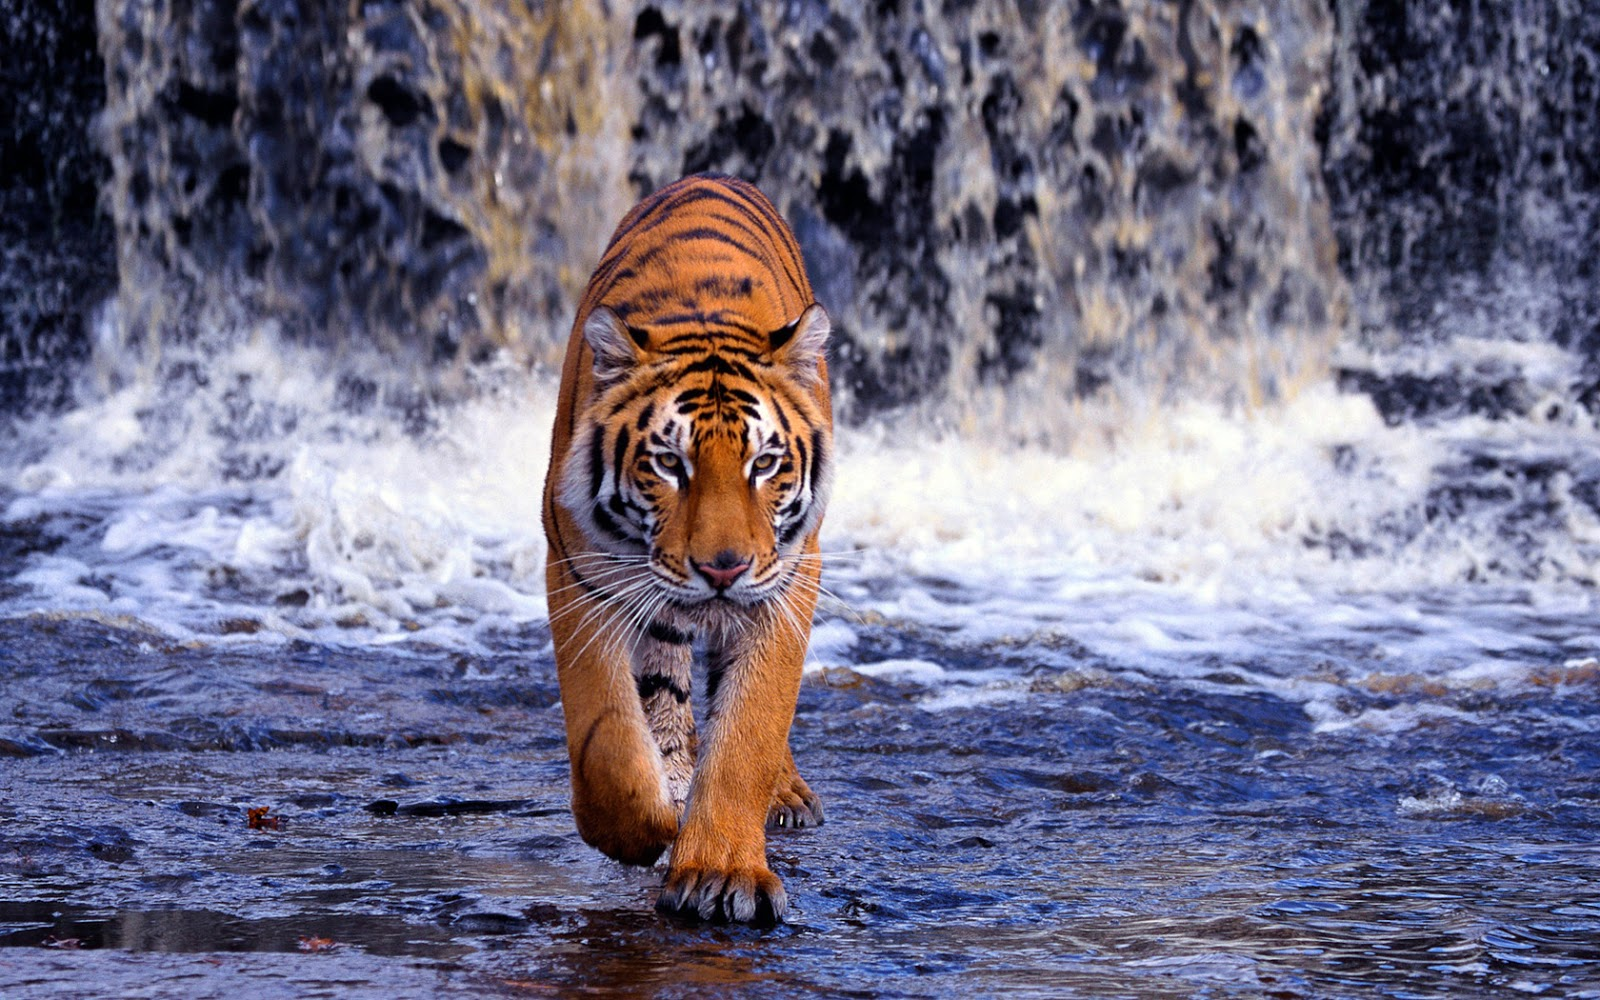 bengal tigers latest hd wallpapers 2013 top hd animals